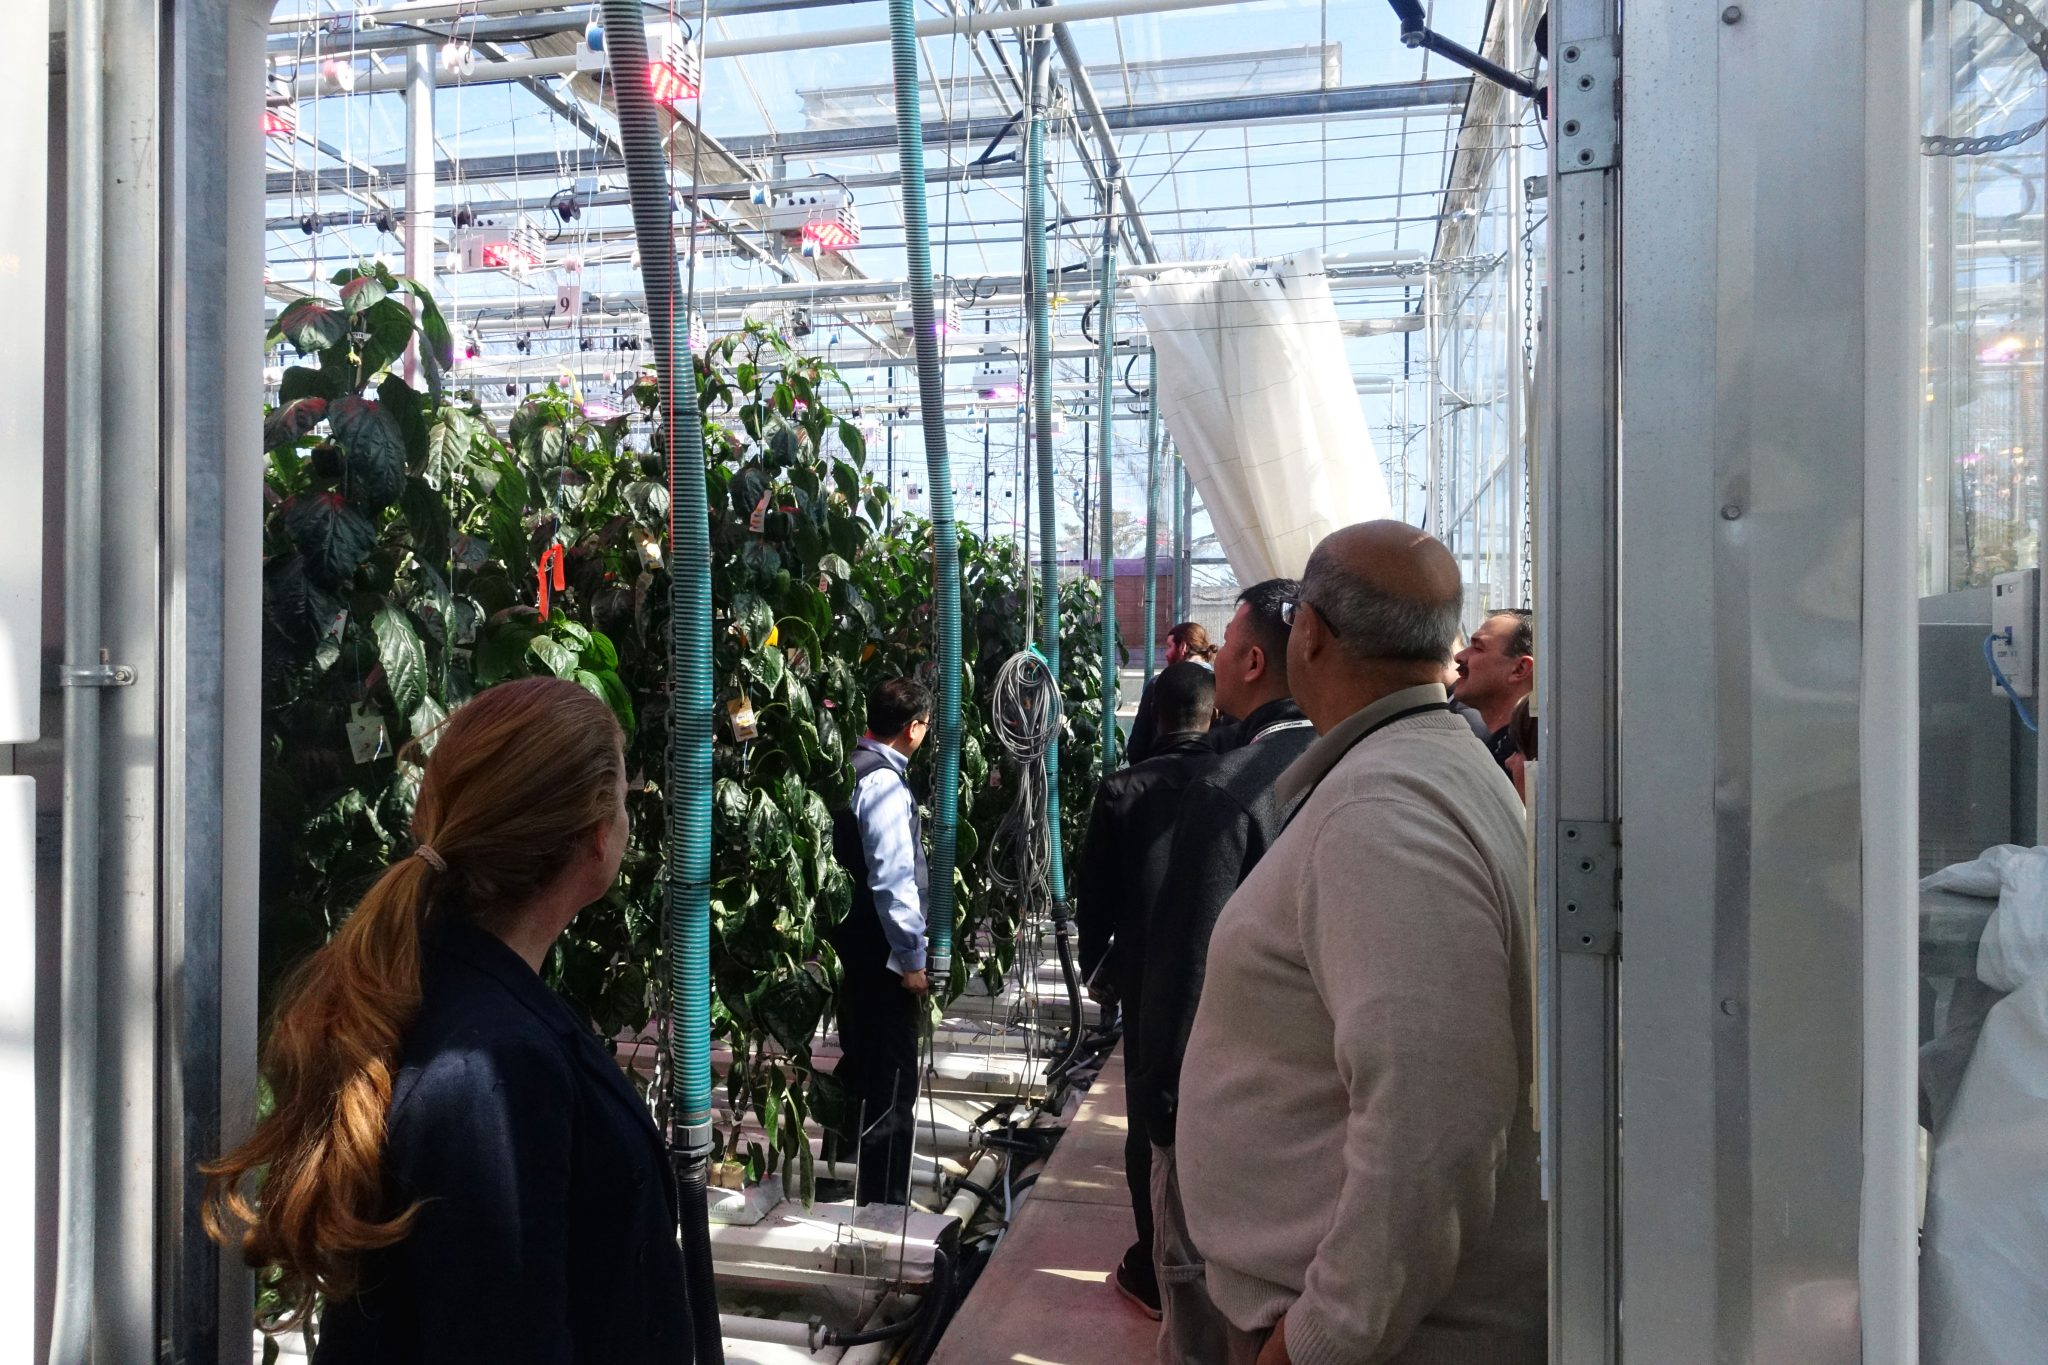 Latest Spectral Science Research Revealed at LumiGrow Ontario Growers' Council